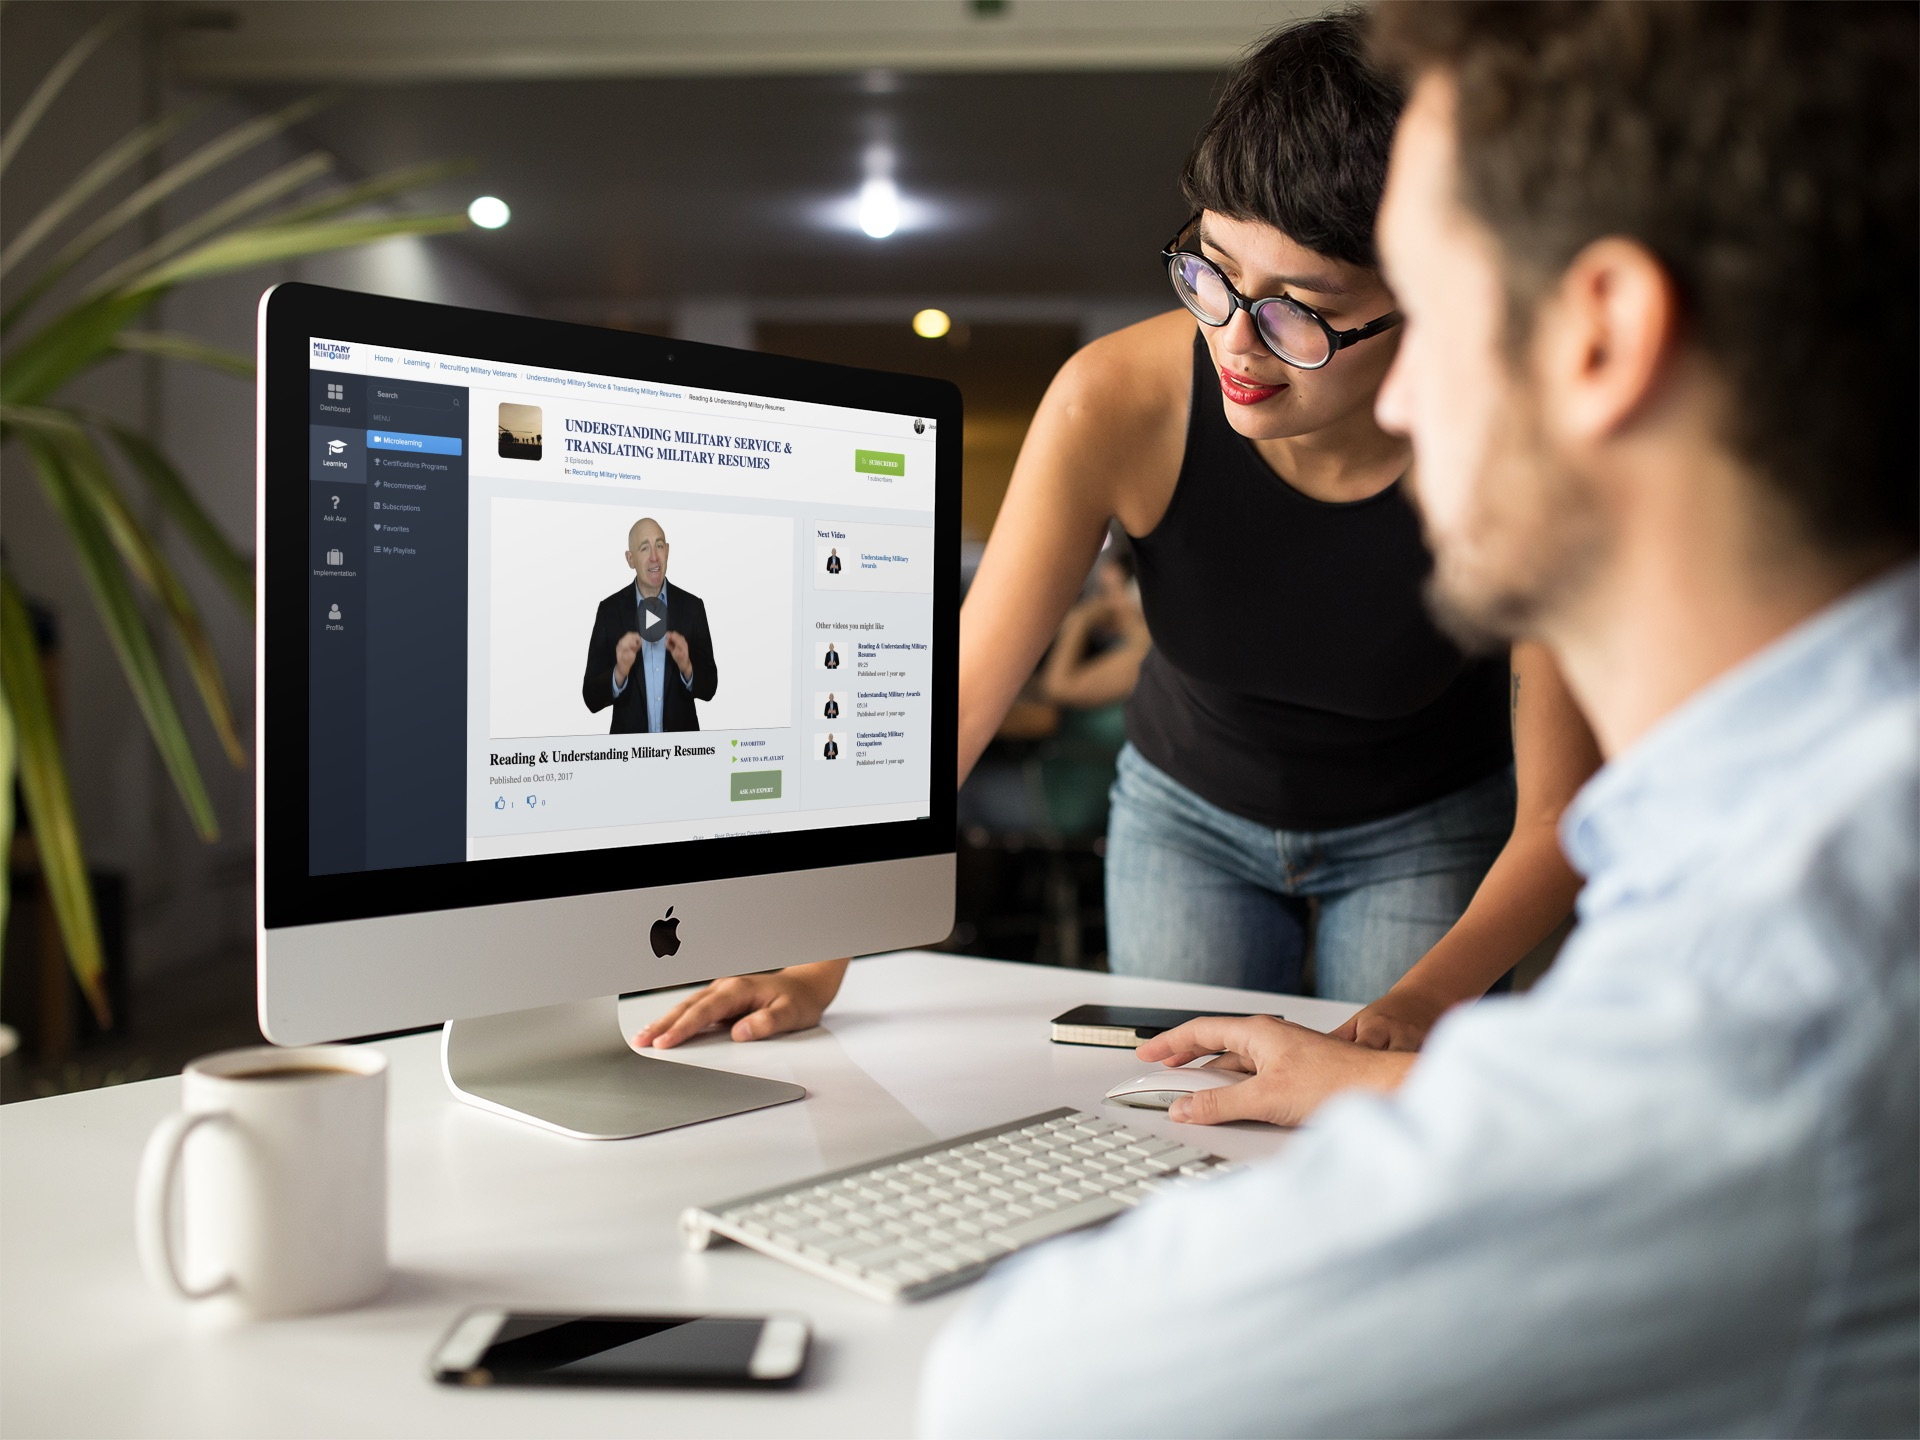 girl-showing-something-in-imac-mockup-to-coworker-a16266.jpg